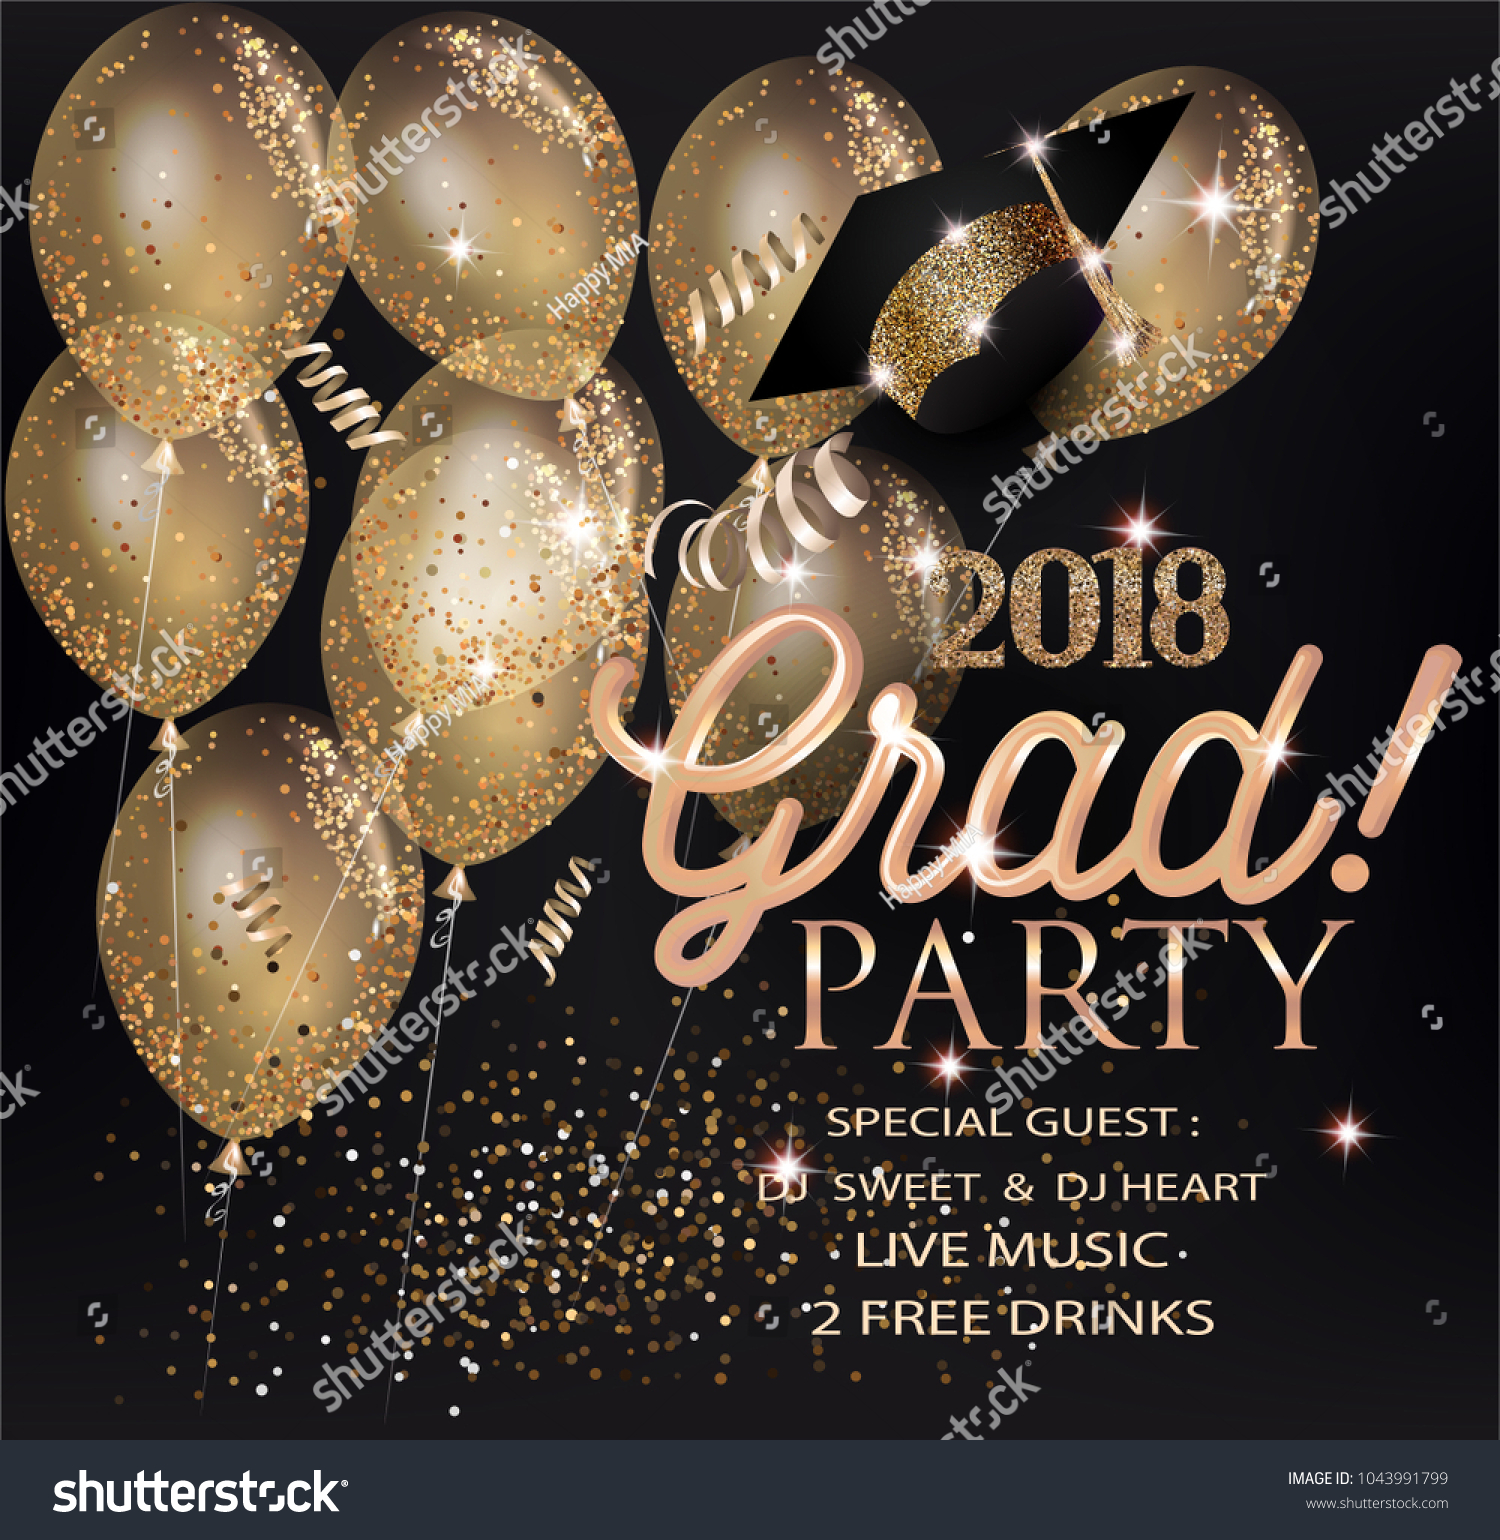 GRADUATION PARTY INVITATION CARD GOLD AIR Stock Vector (2018 ...